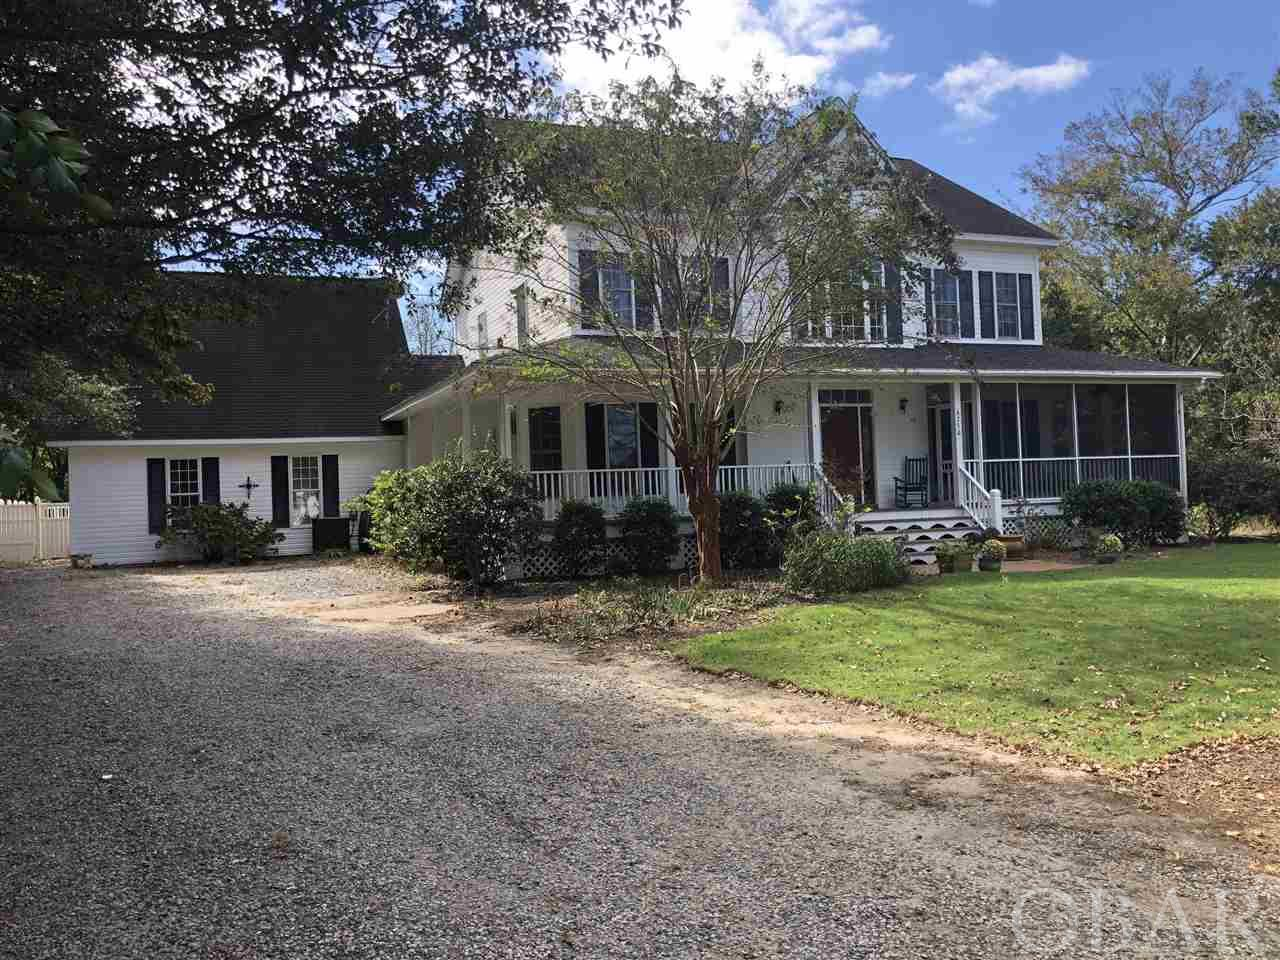 4250 Worthington Lane Lot 4, Kitty Hawk, NC 27949